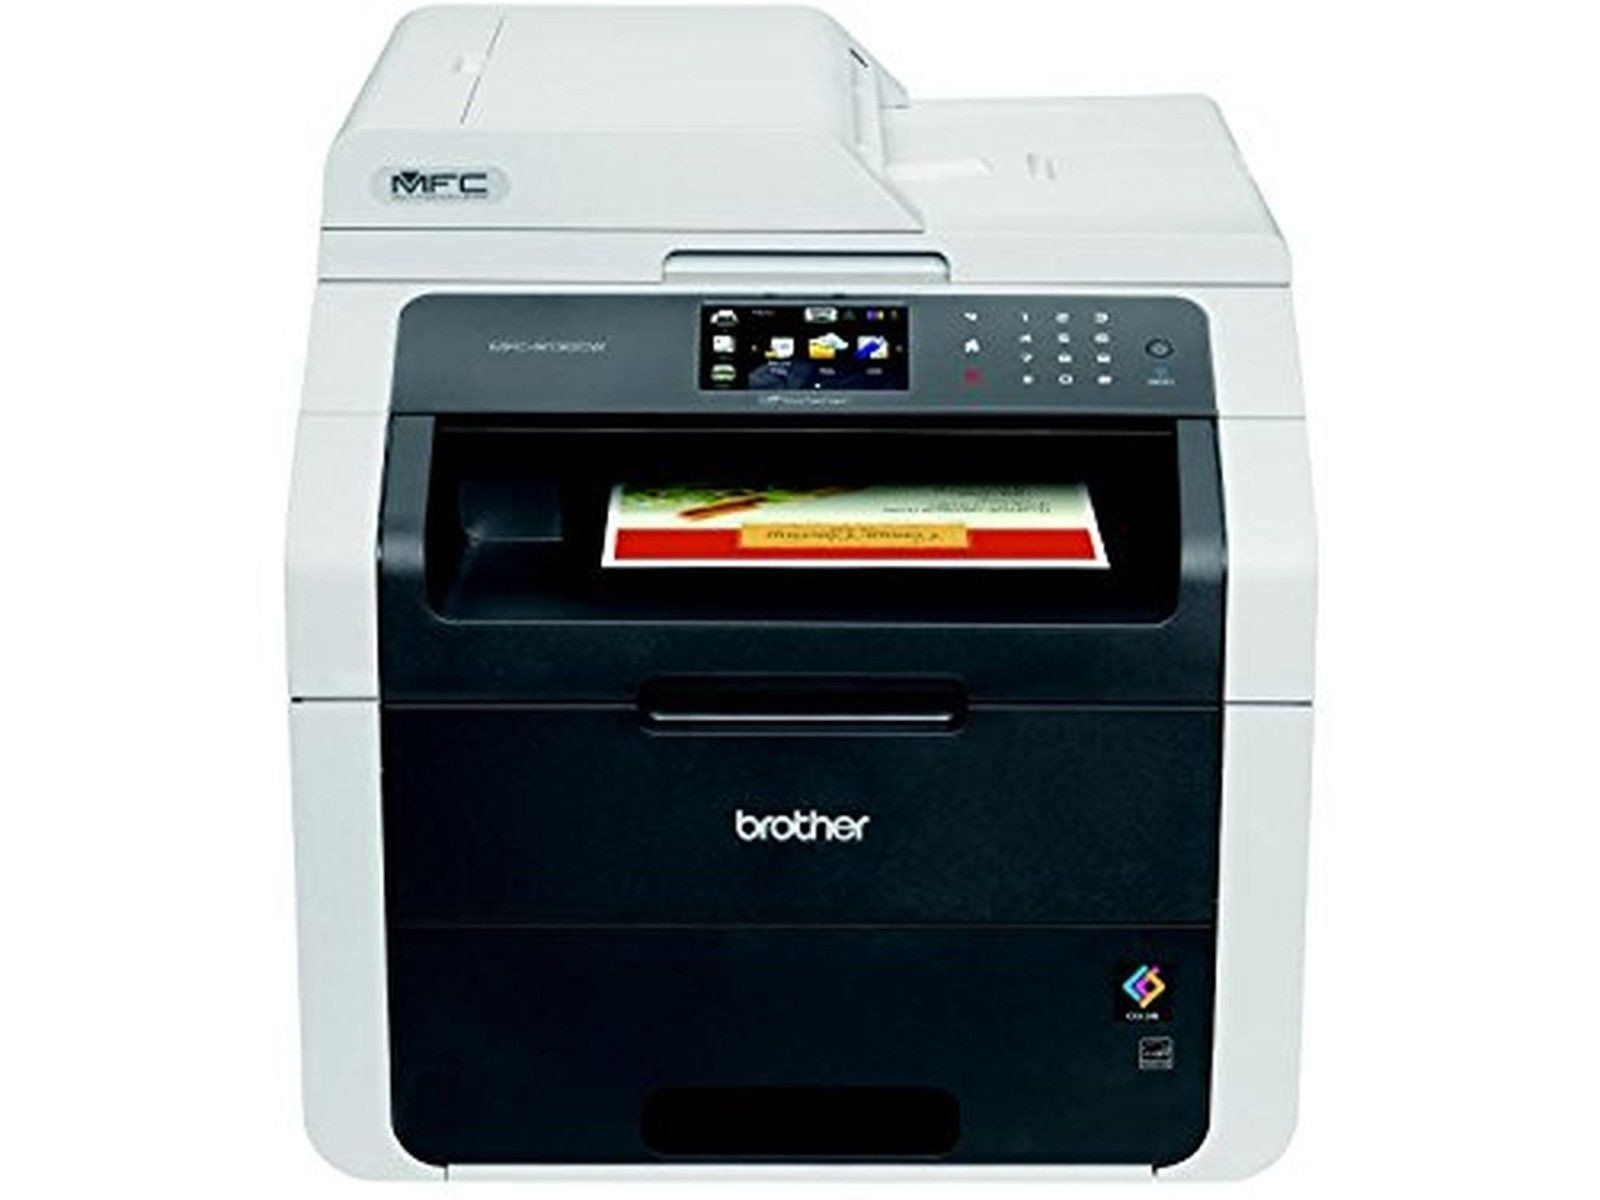 Brother Mfc9130Cw Wireless AllInOne Printer With Scanner